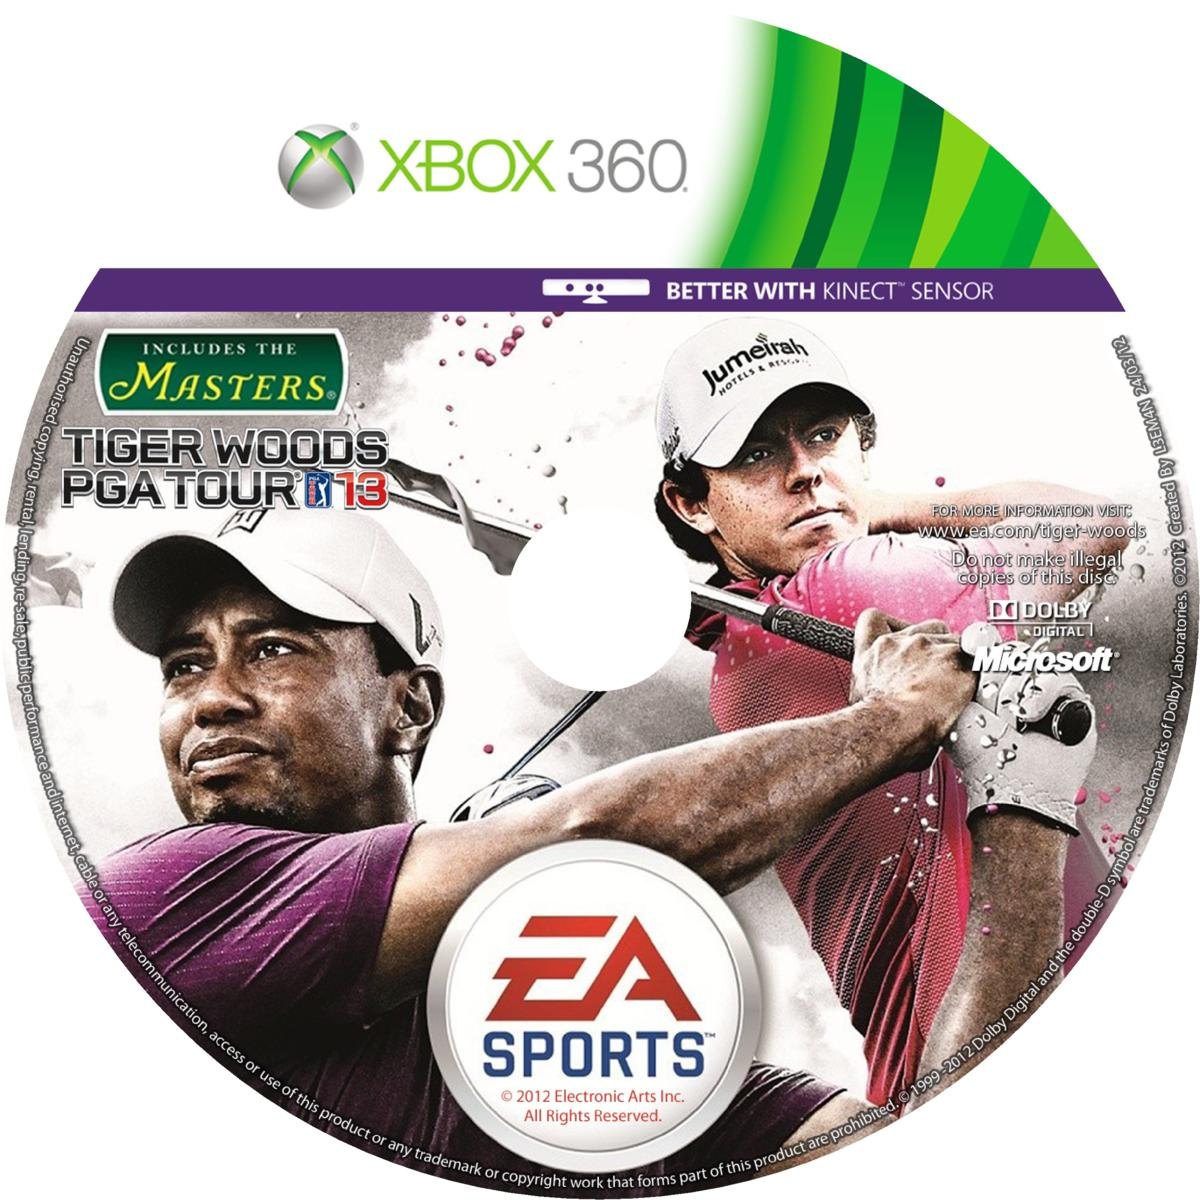 the latest tiger woods pga tour 13 cheats cheat codes xbox 360 hints